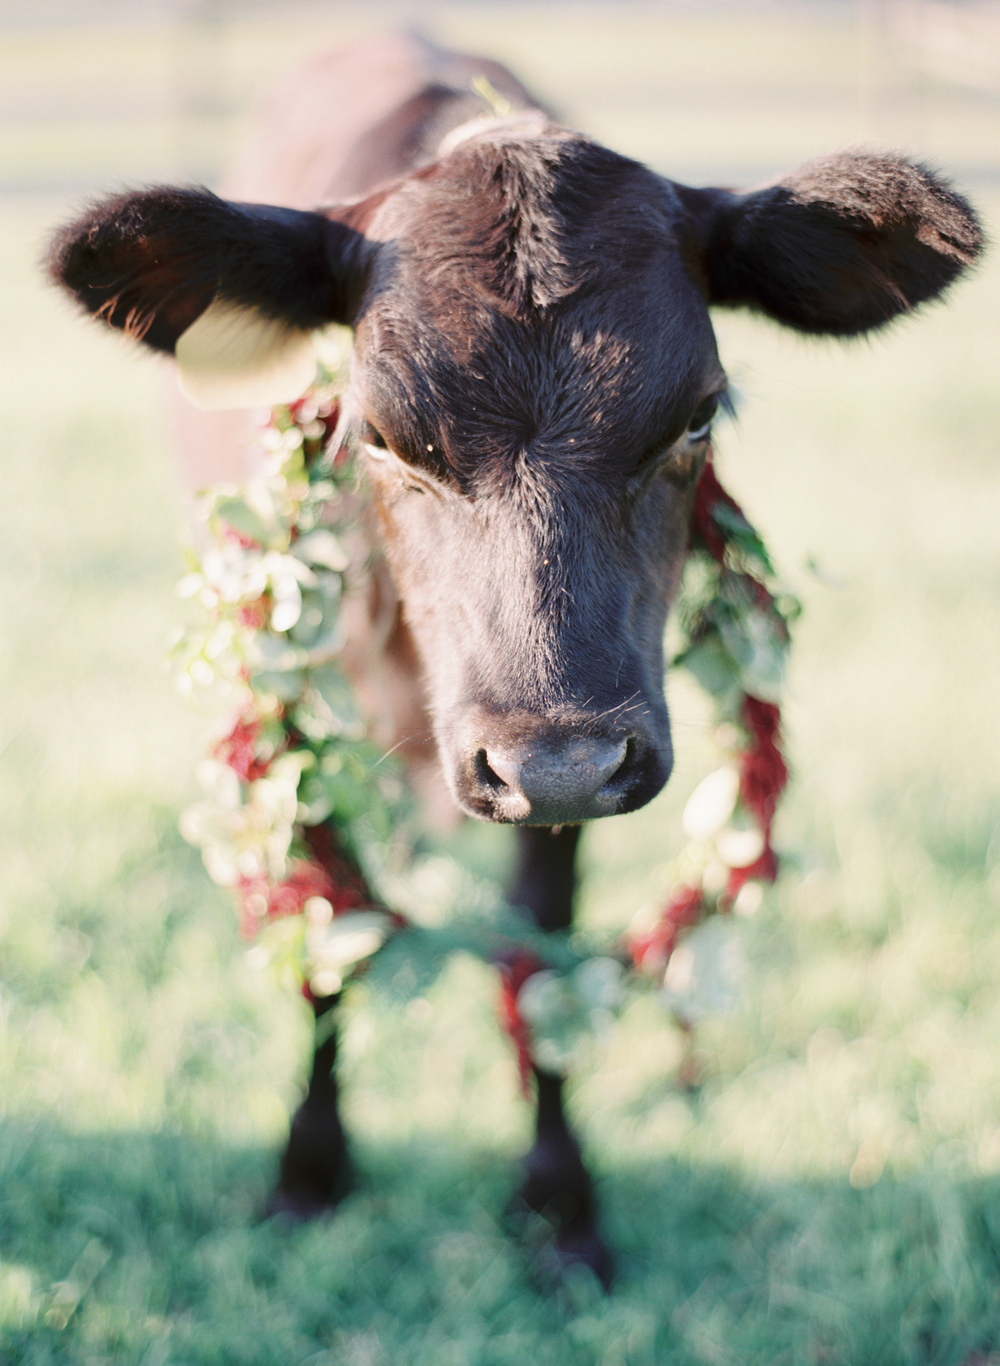 Cow in Nashville with Floral Wreath